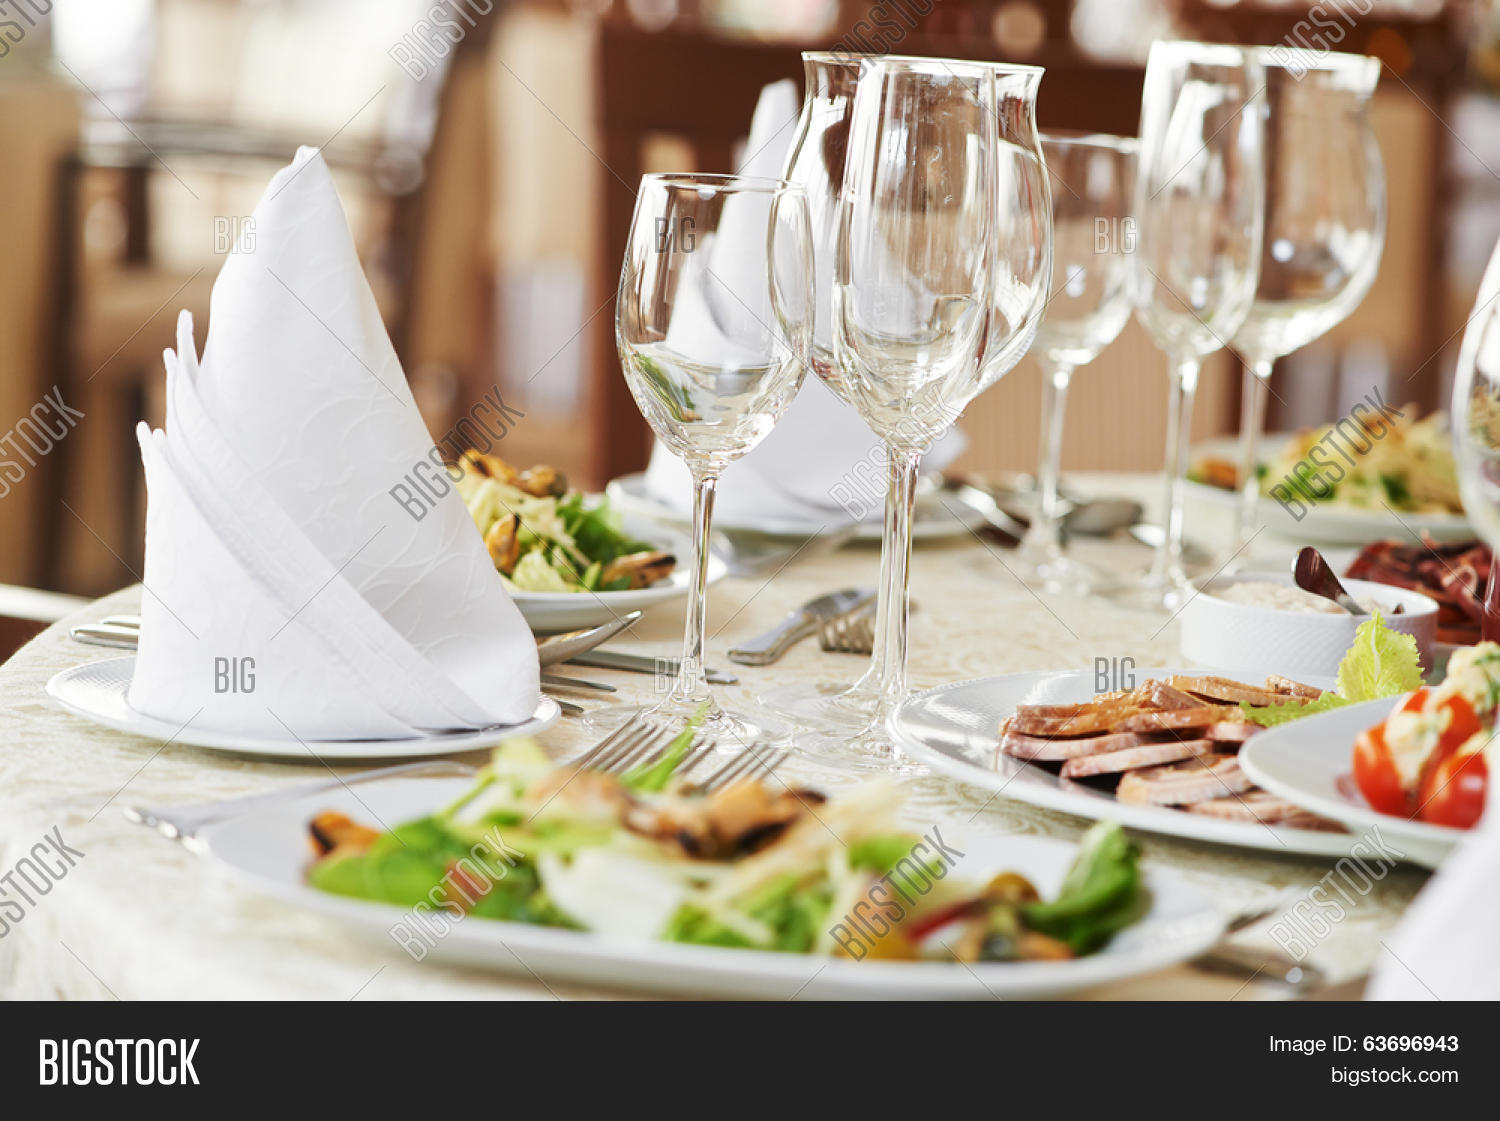 Catering Services Background Snacks Image & Photo | Bigstock